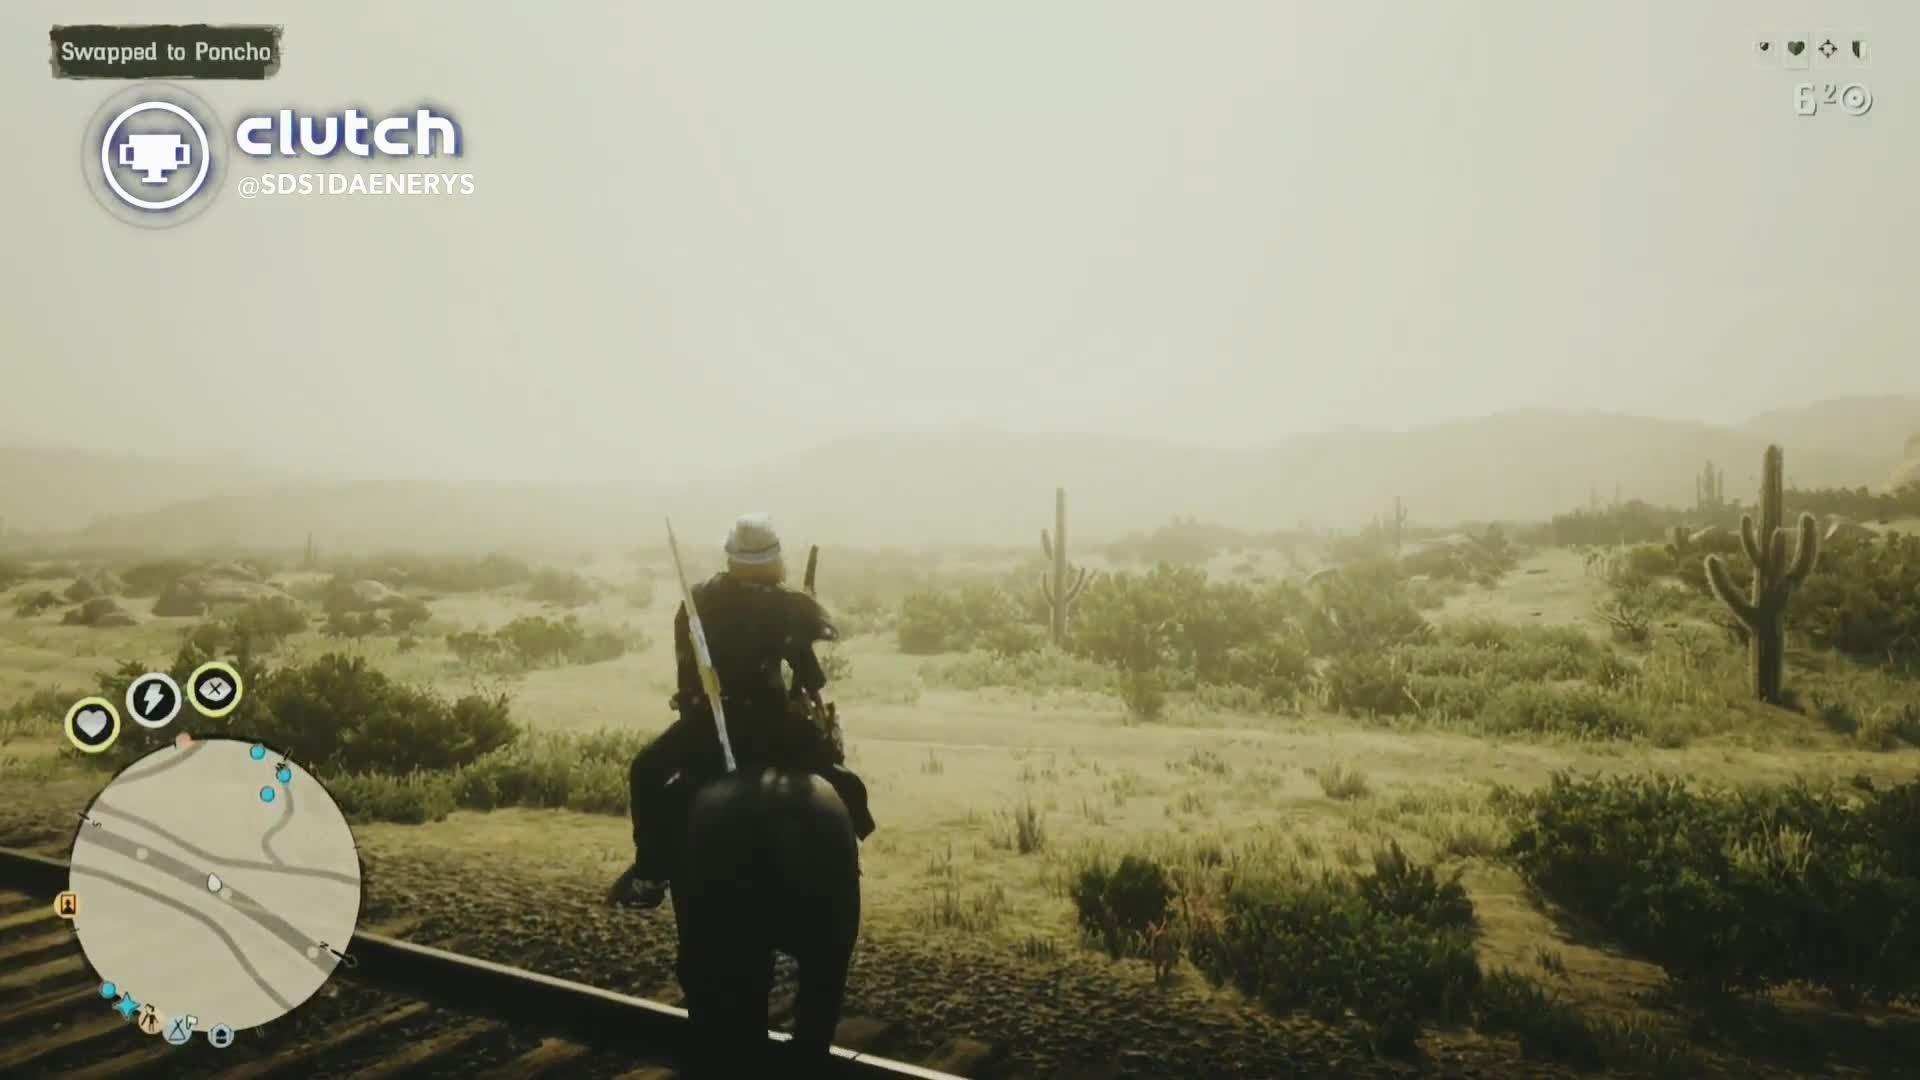 Red Dead Redemption: General - Carcano on point. video cover image 0